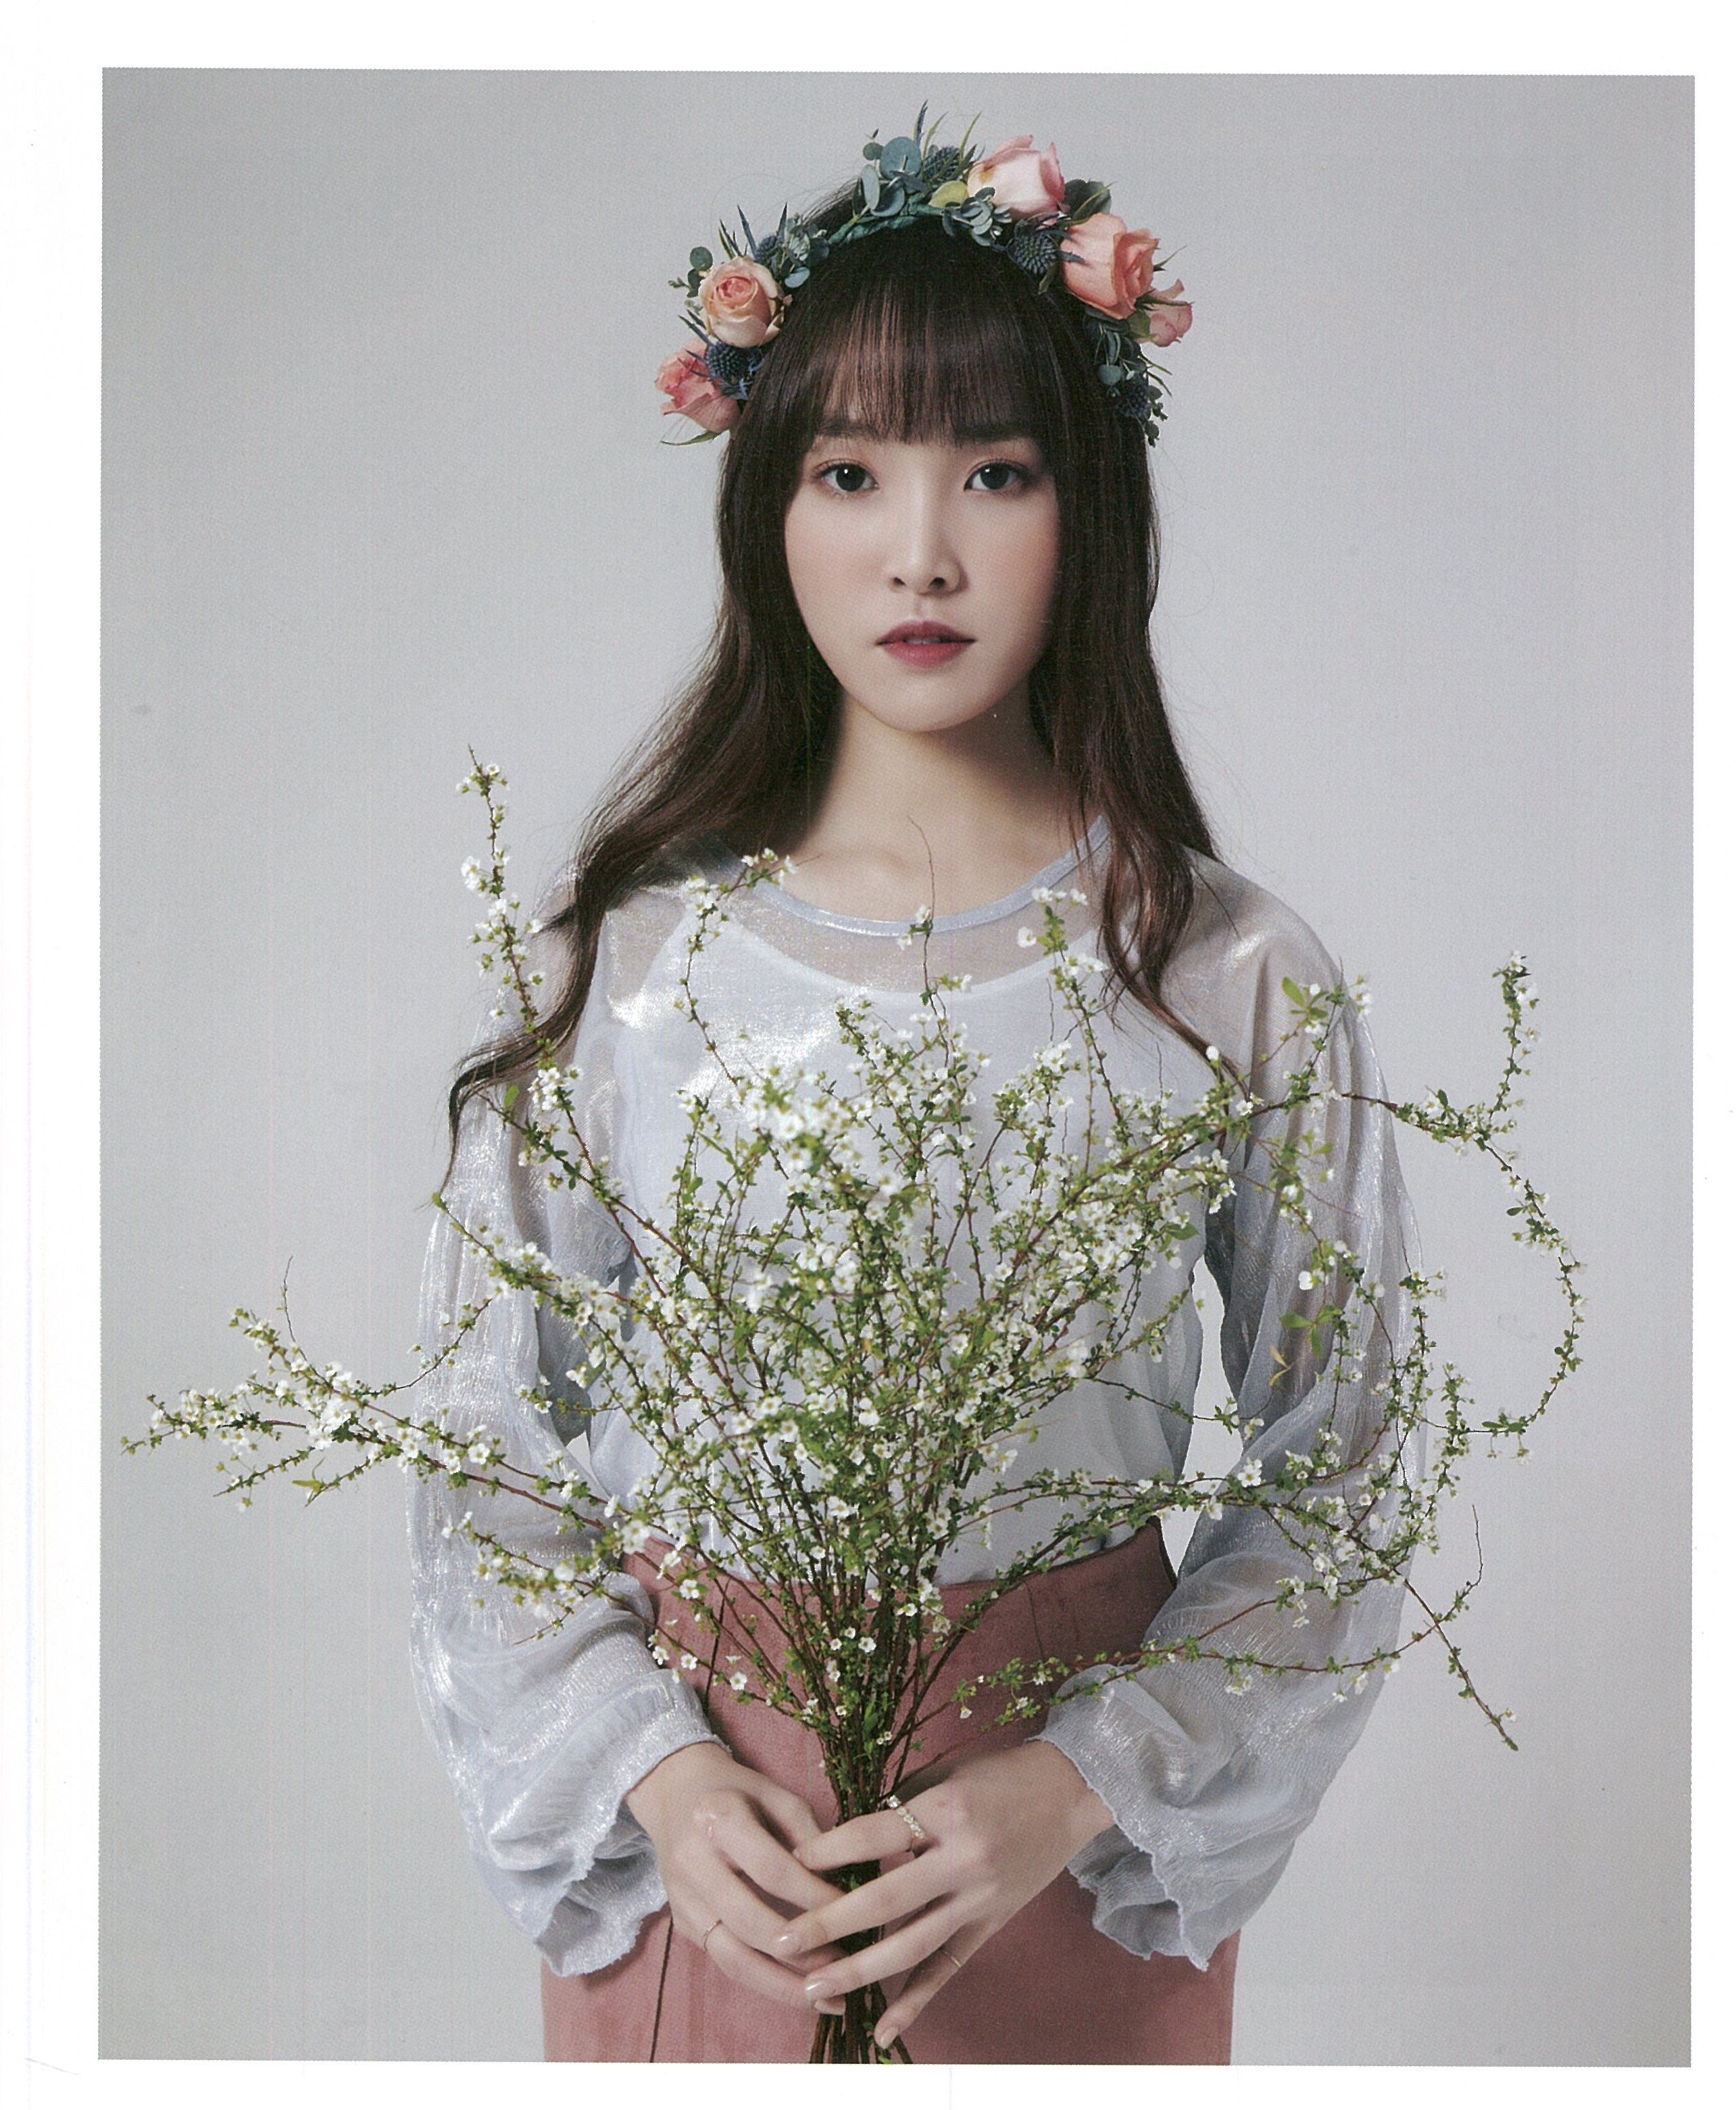 Flower Crown Flower Page 5 Of 19 Asiachan Kpop Image Board